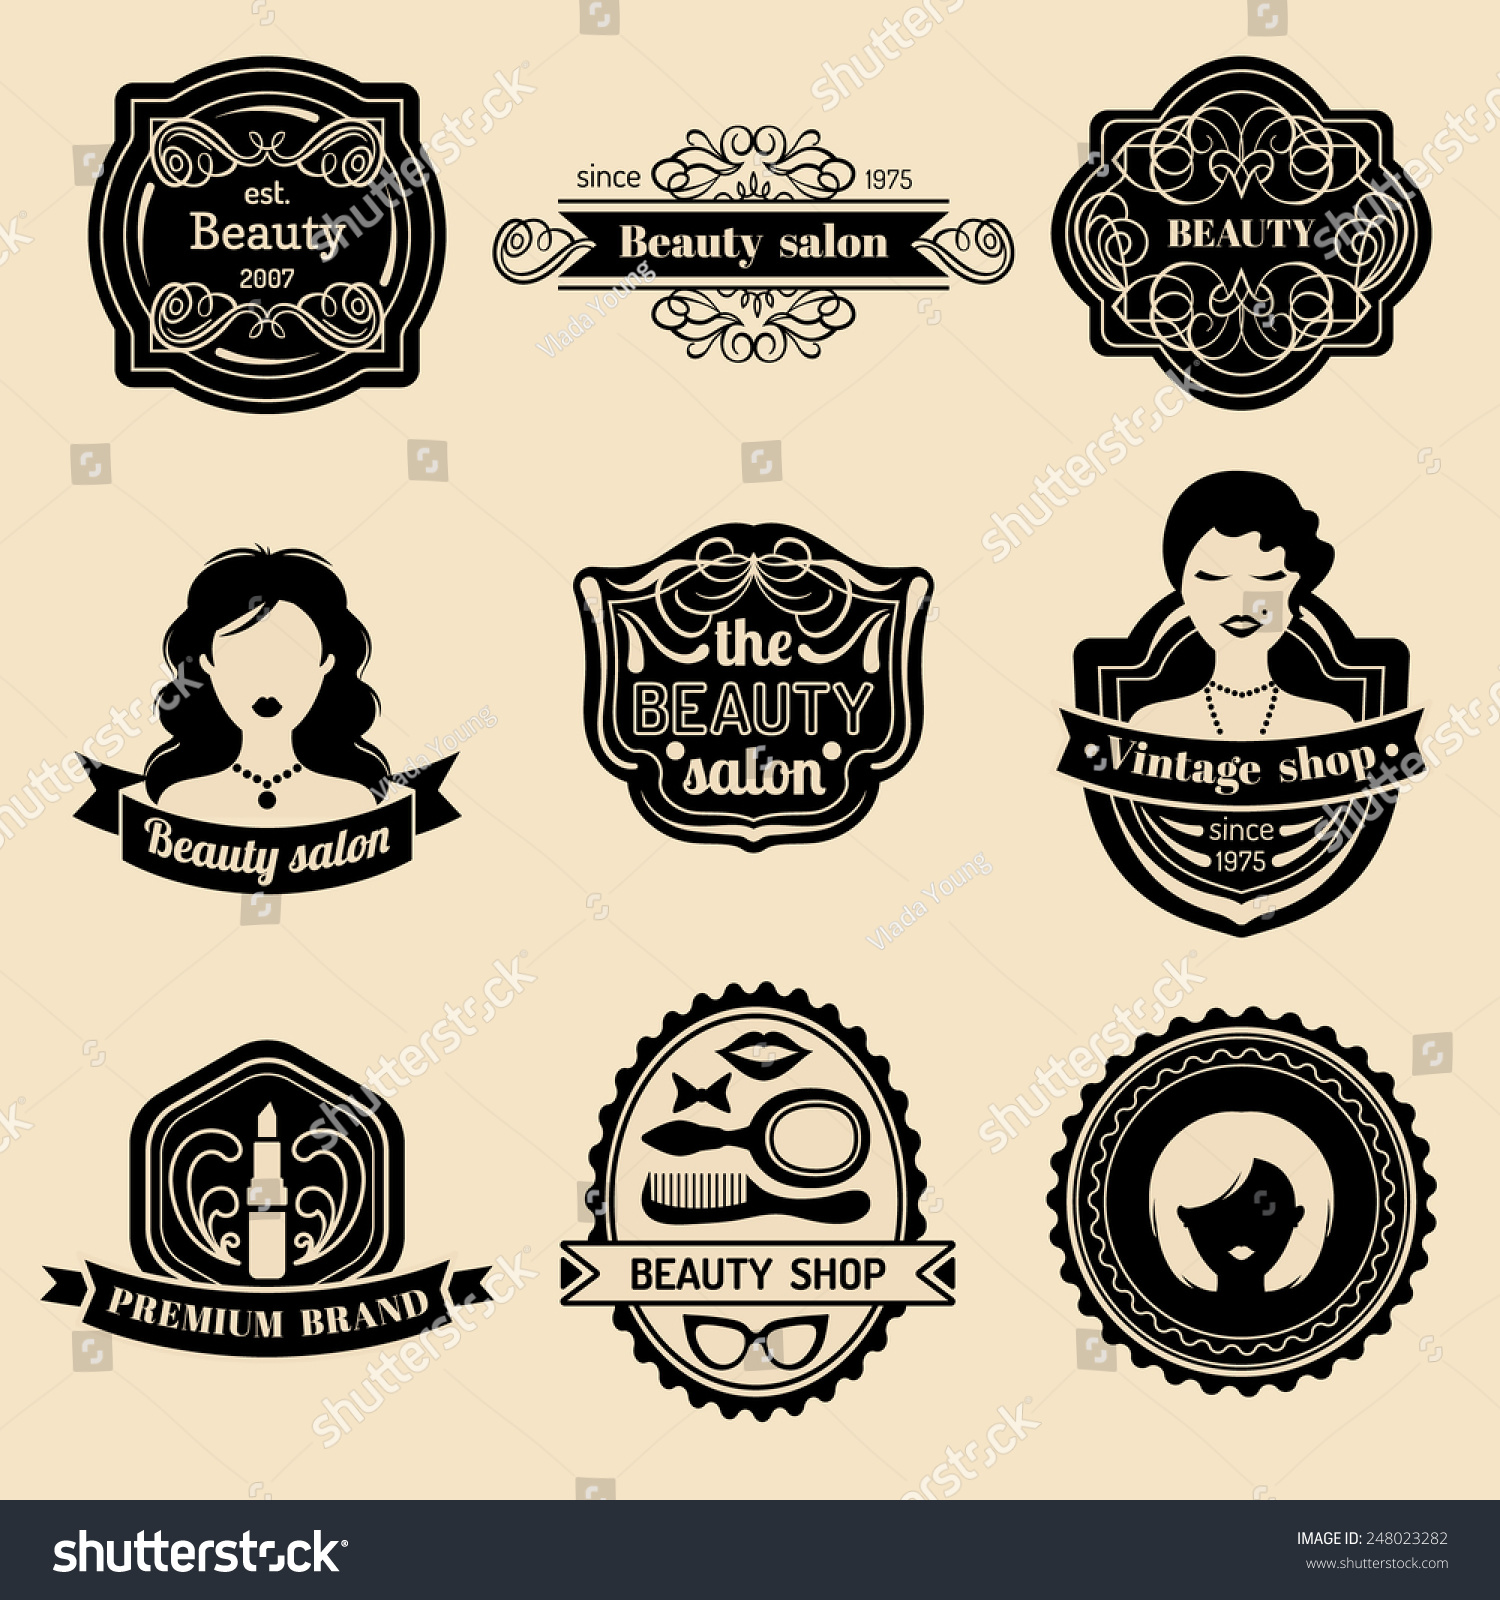 Vector Set Of Hipster Woman Logo Beauty Salon Or Vintage Shop Retro Icons Collection